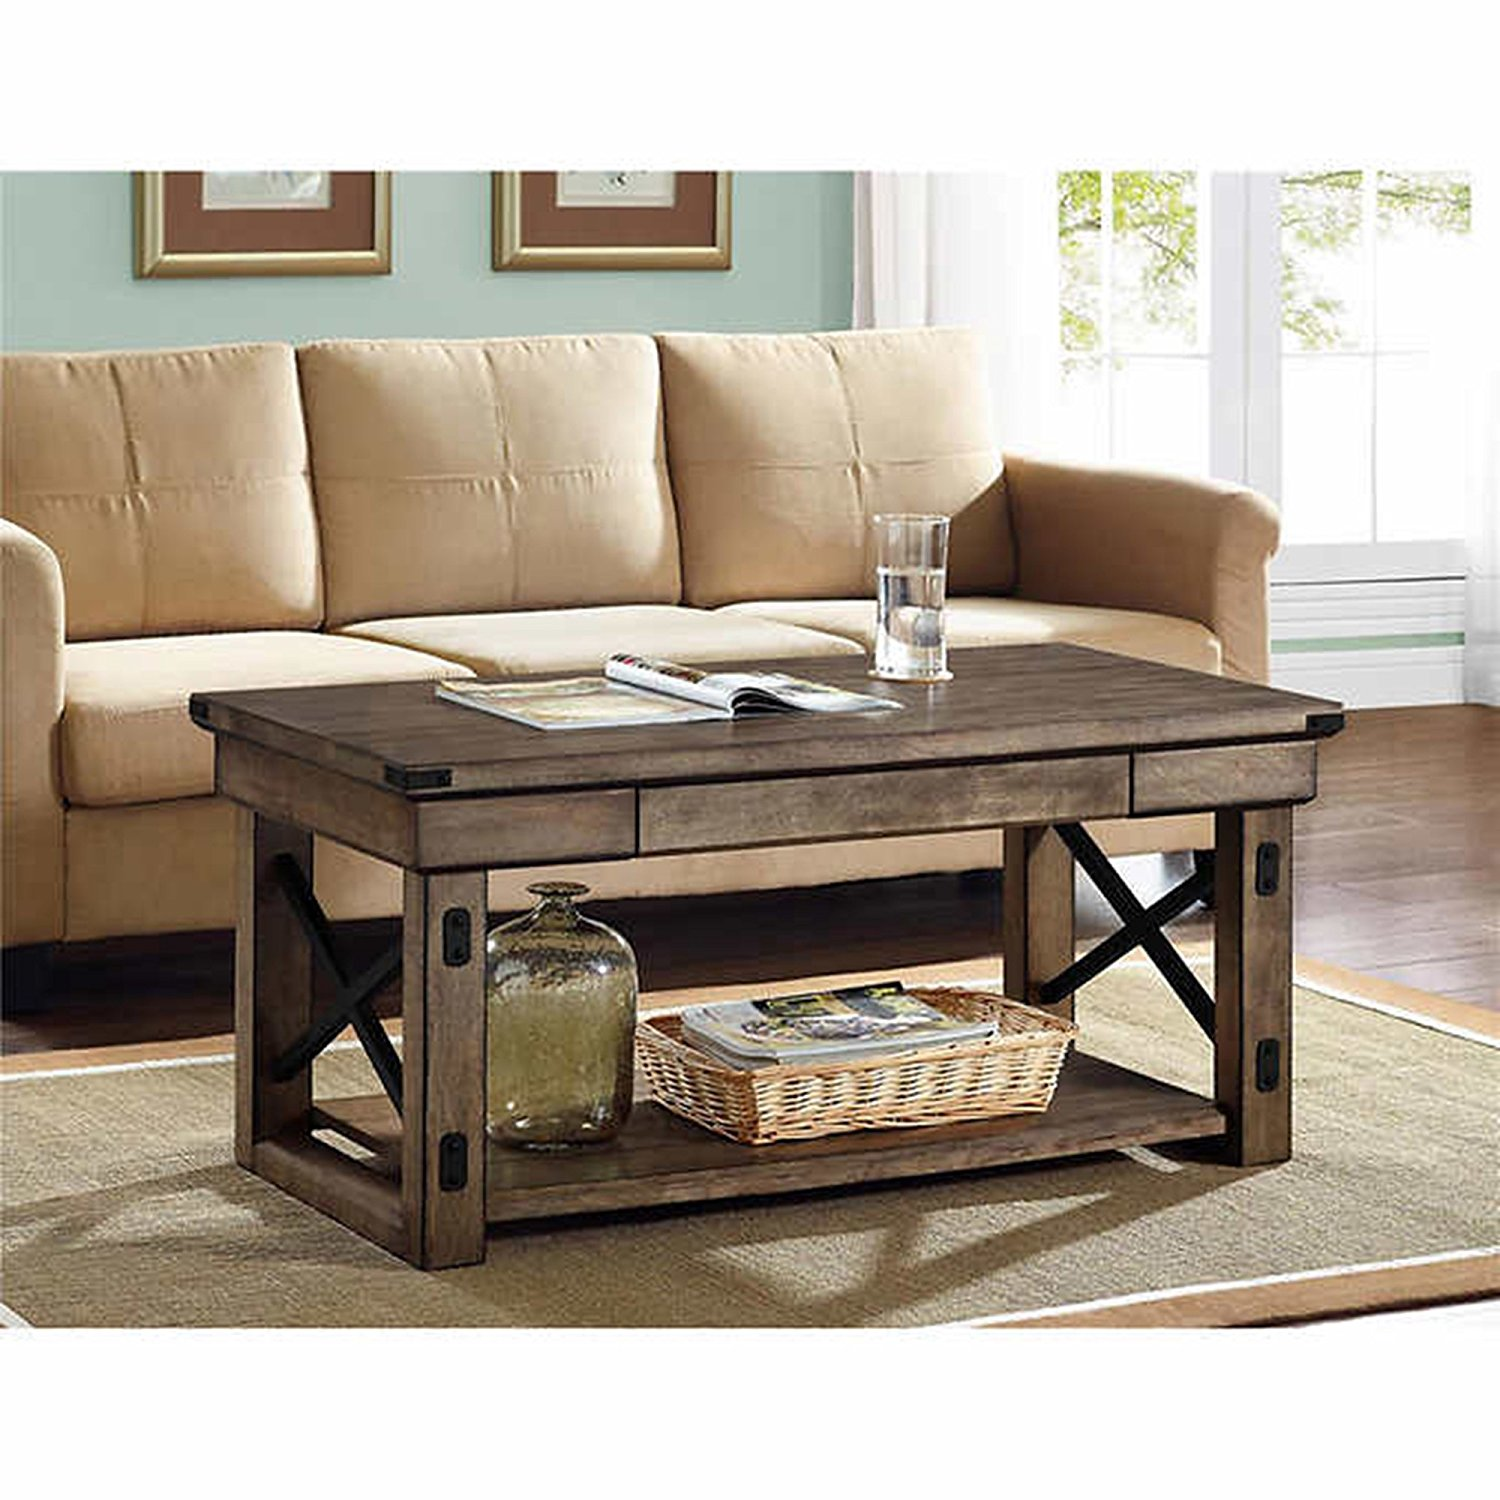 appealing rustic teal end tables ideas table nesting height for best decor bedroom famil set home lamps normal leg silver marble antiq metal living plans chair mirrored target